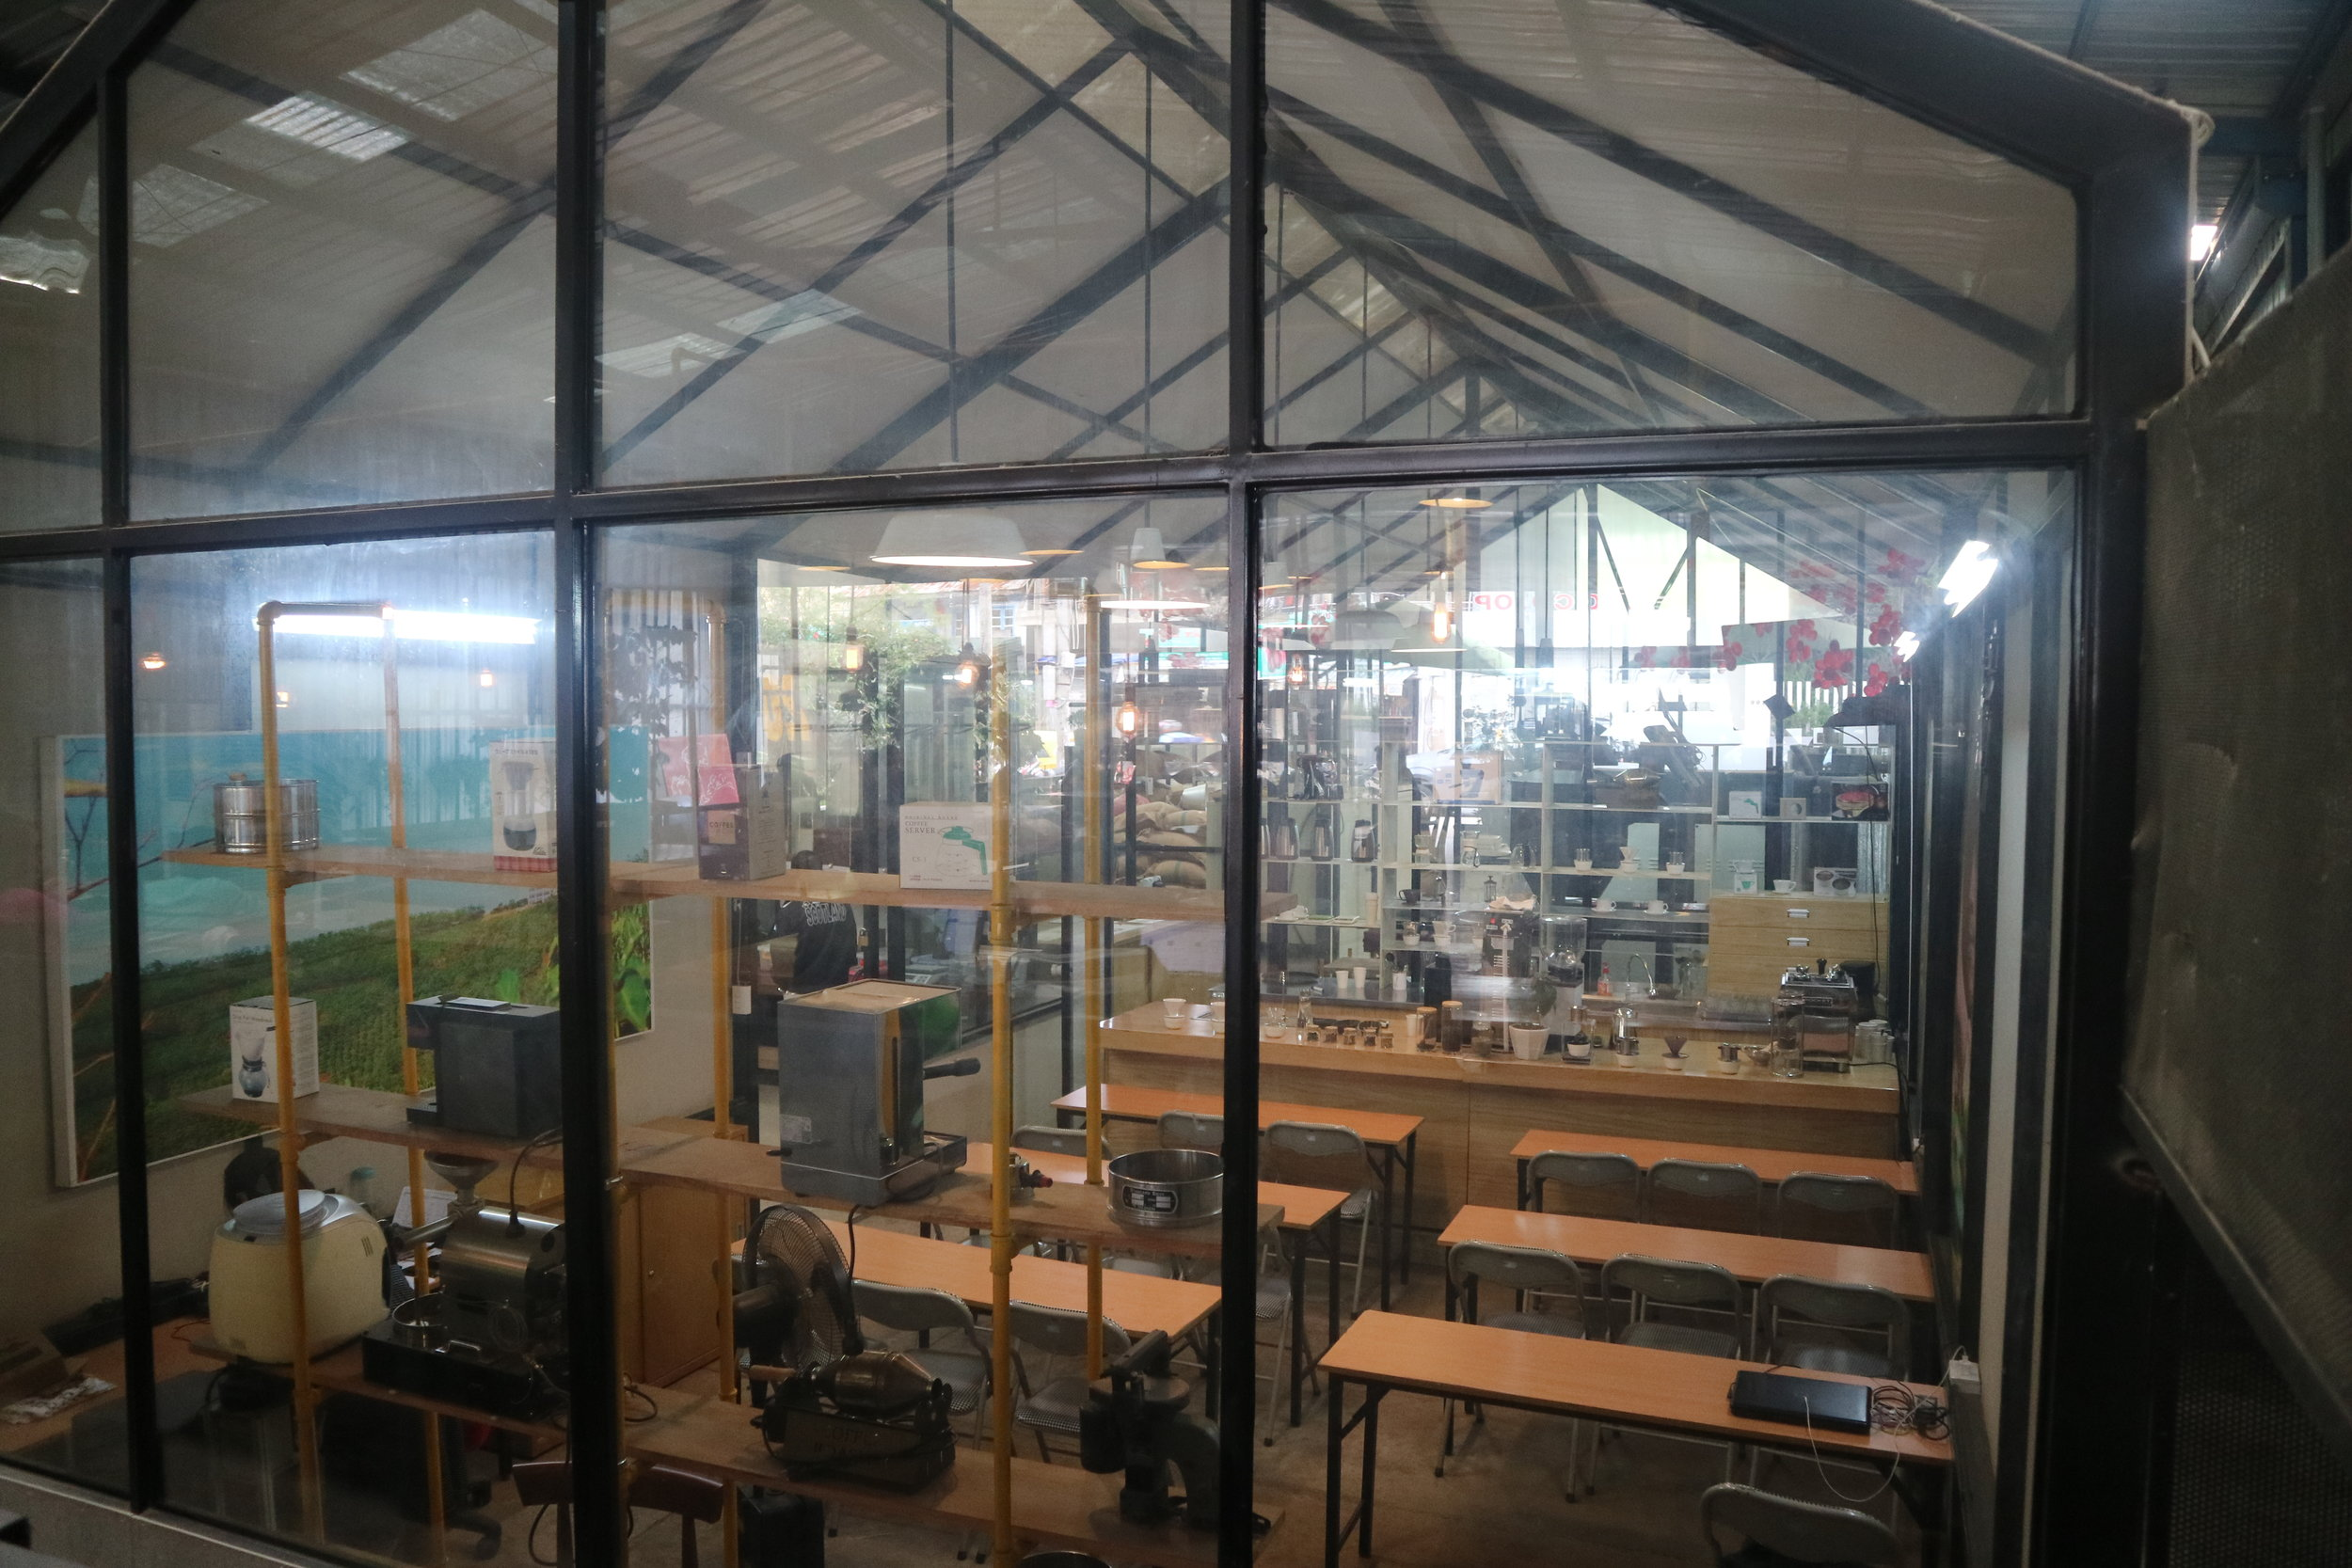 Training room and lab, in a momentary peaceful moment.